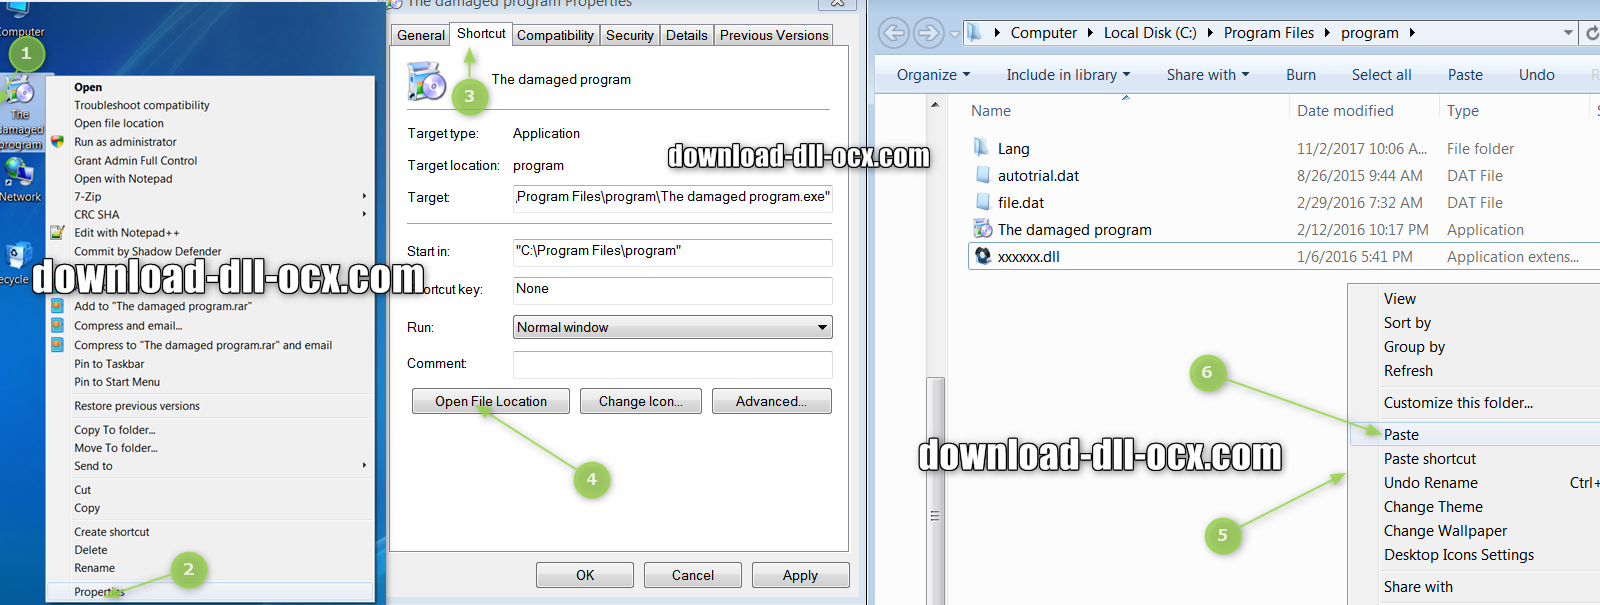 how to install Packager.dll file? for fix missing